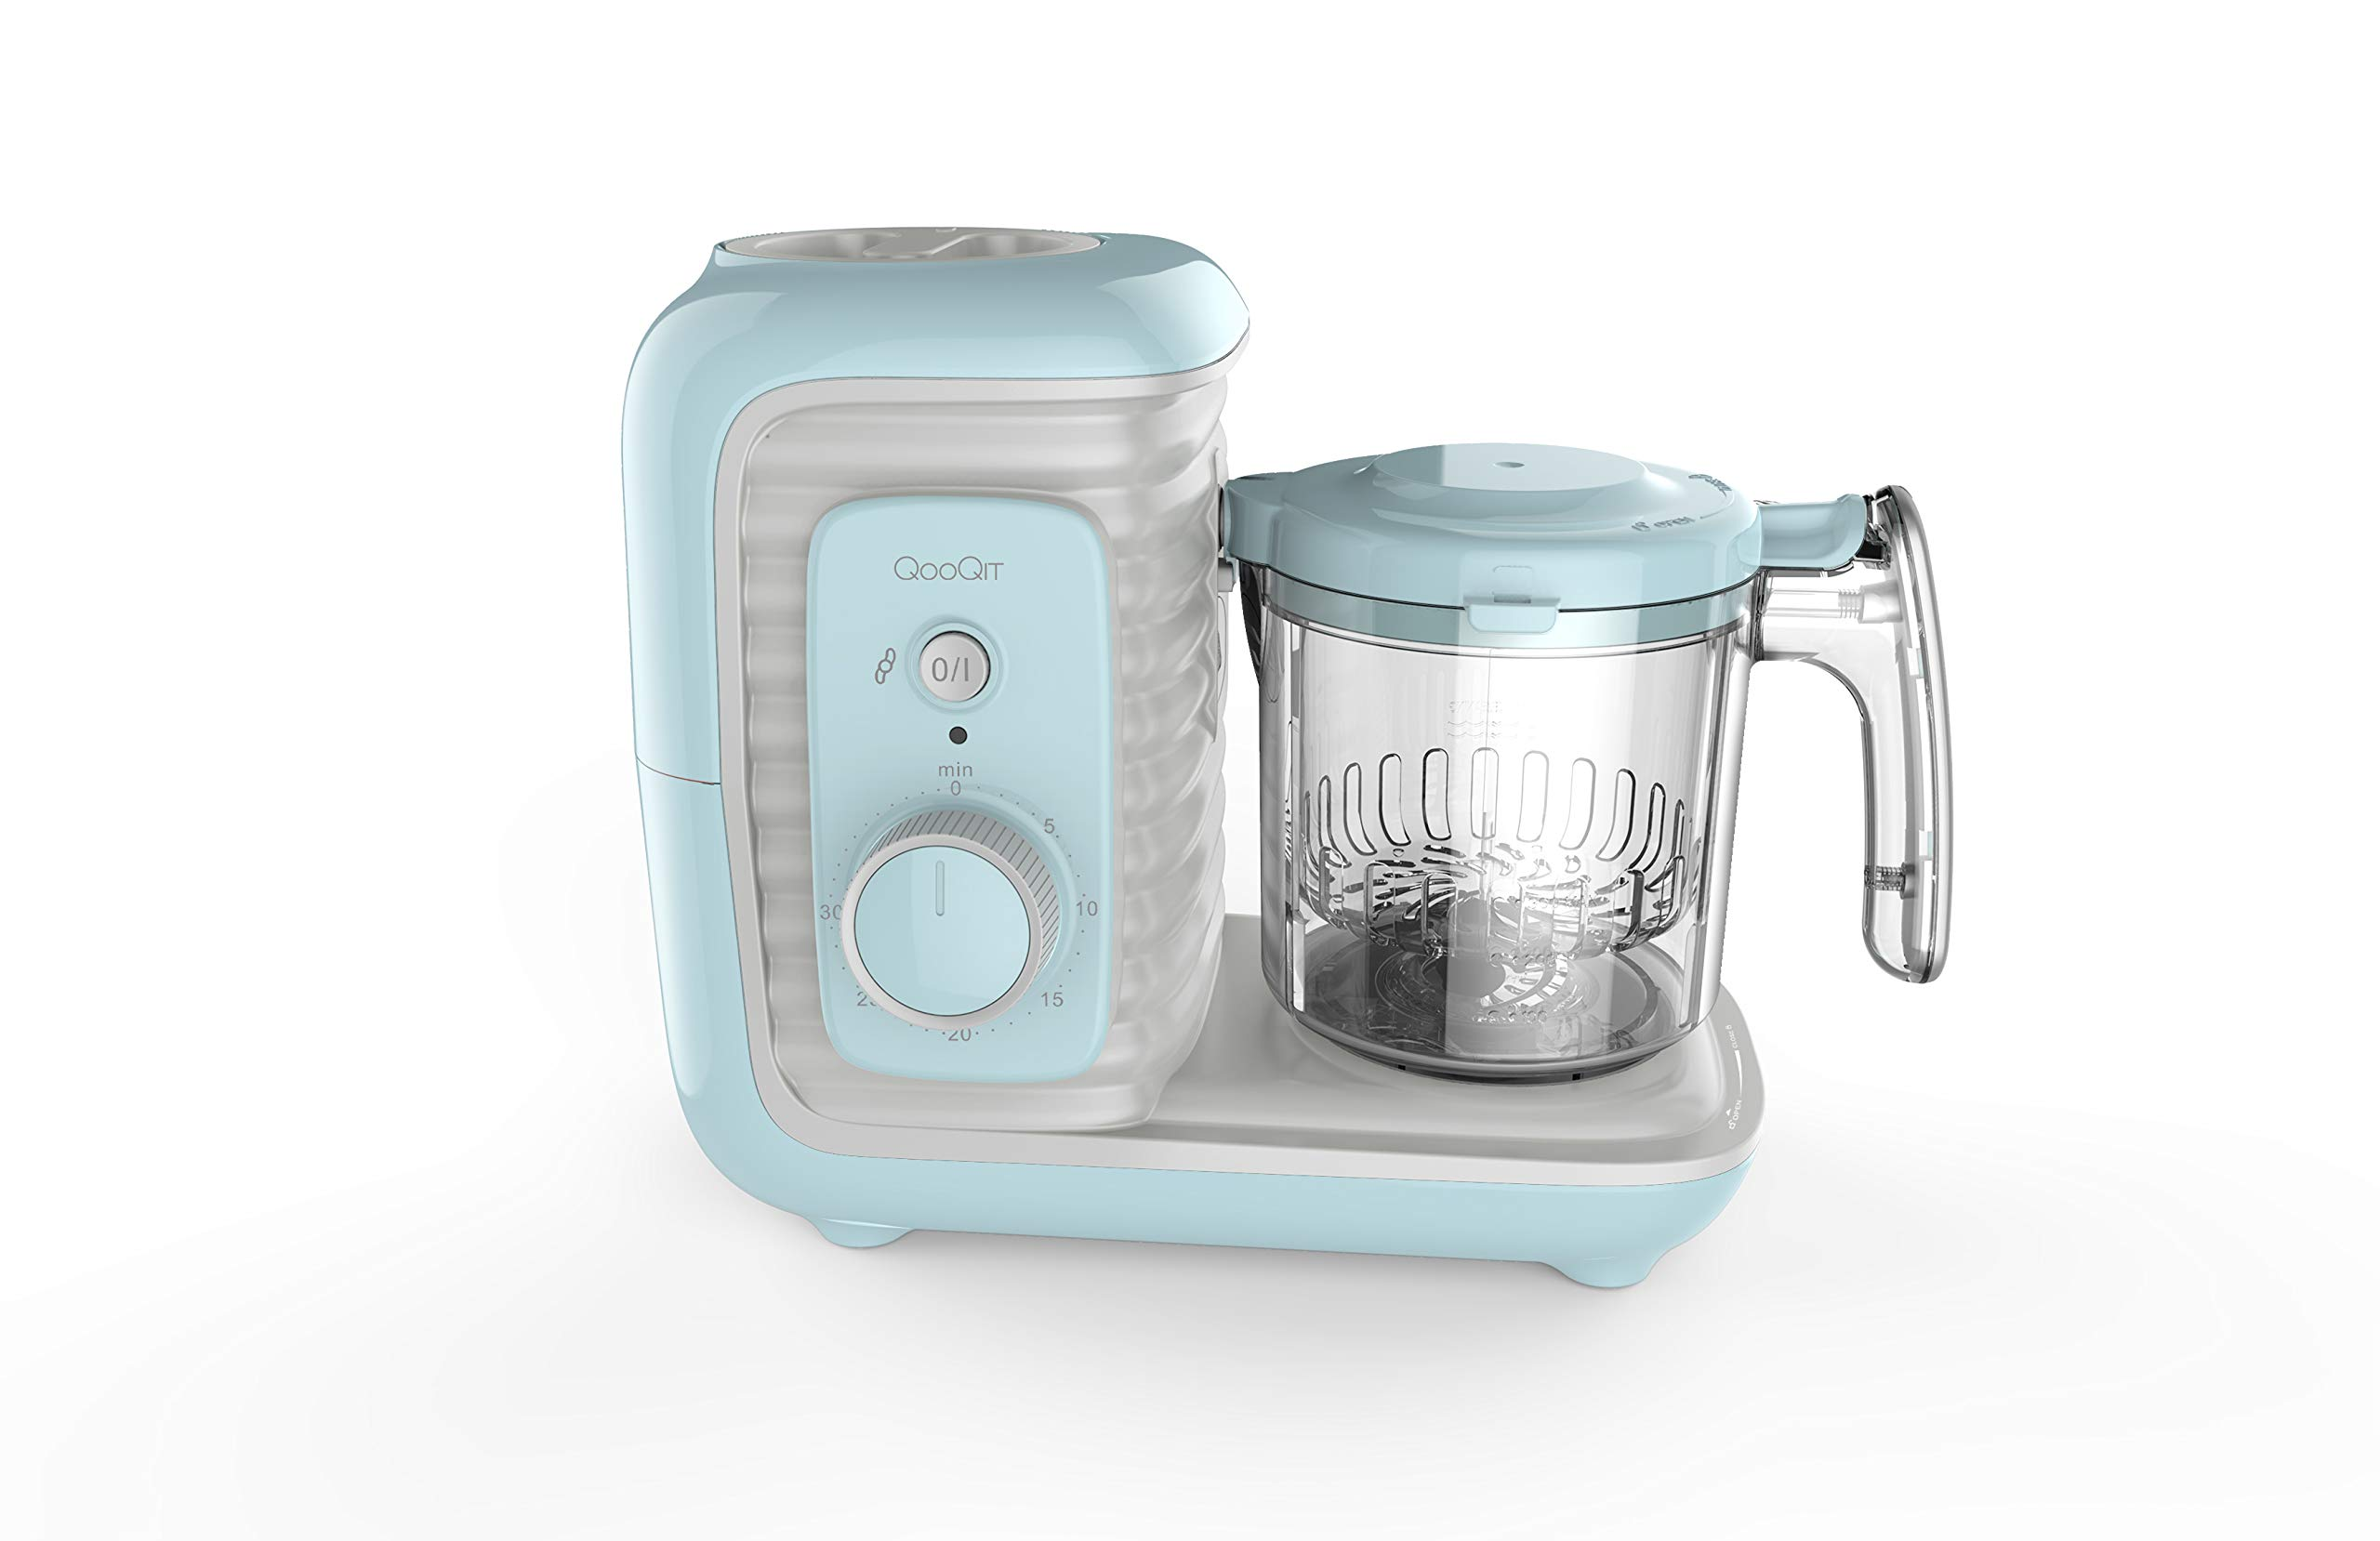 LuxxBaby QooQit 5 in 1 Baby Food Maker/Processor for Infants/Toddlers Organic Food Making Machine with Steam Cooker, Blender, Chopper, Defroster, Reheater, (Aqua Color)